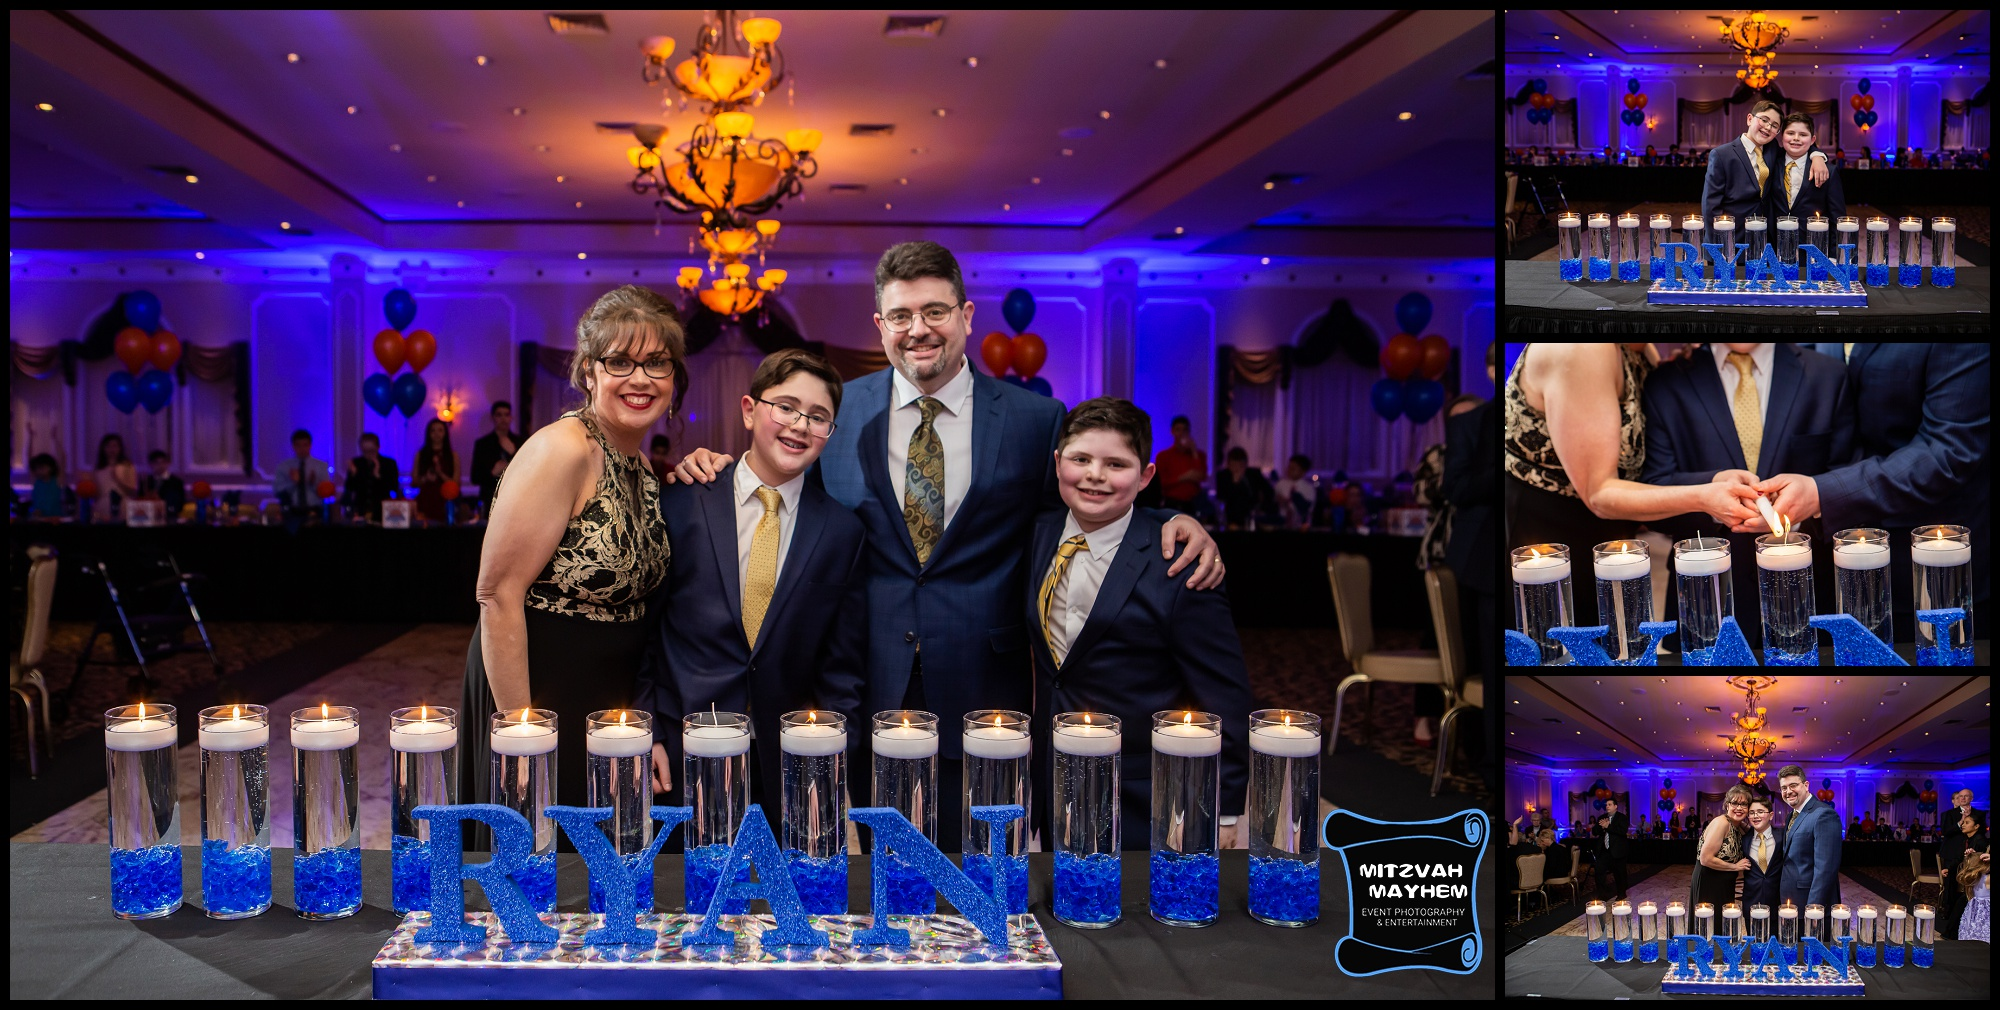 nj-mitzvah-photographer-jacques-caterers-31.JPG